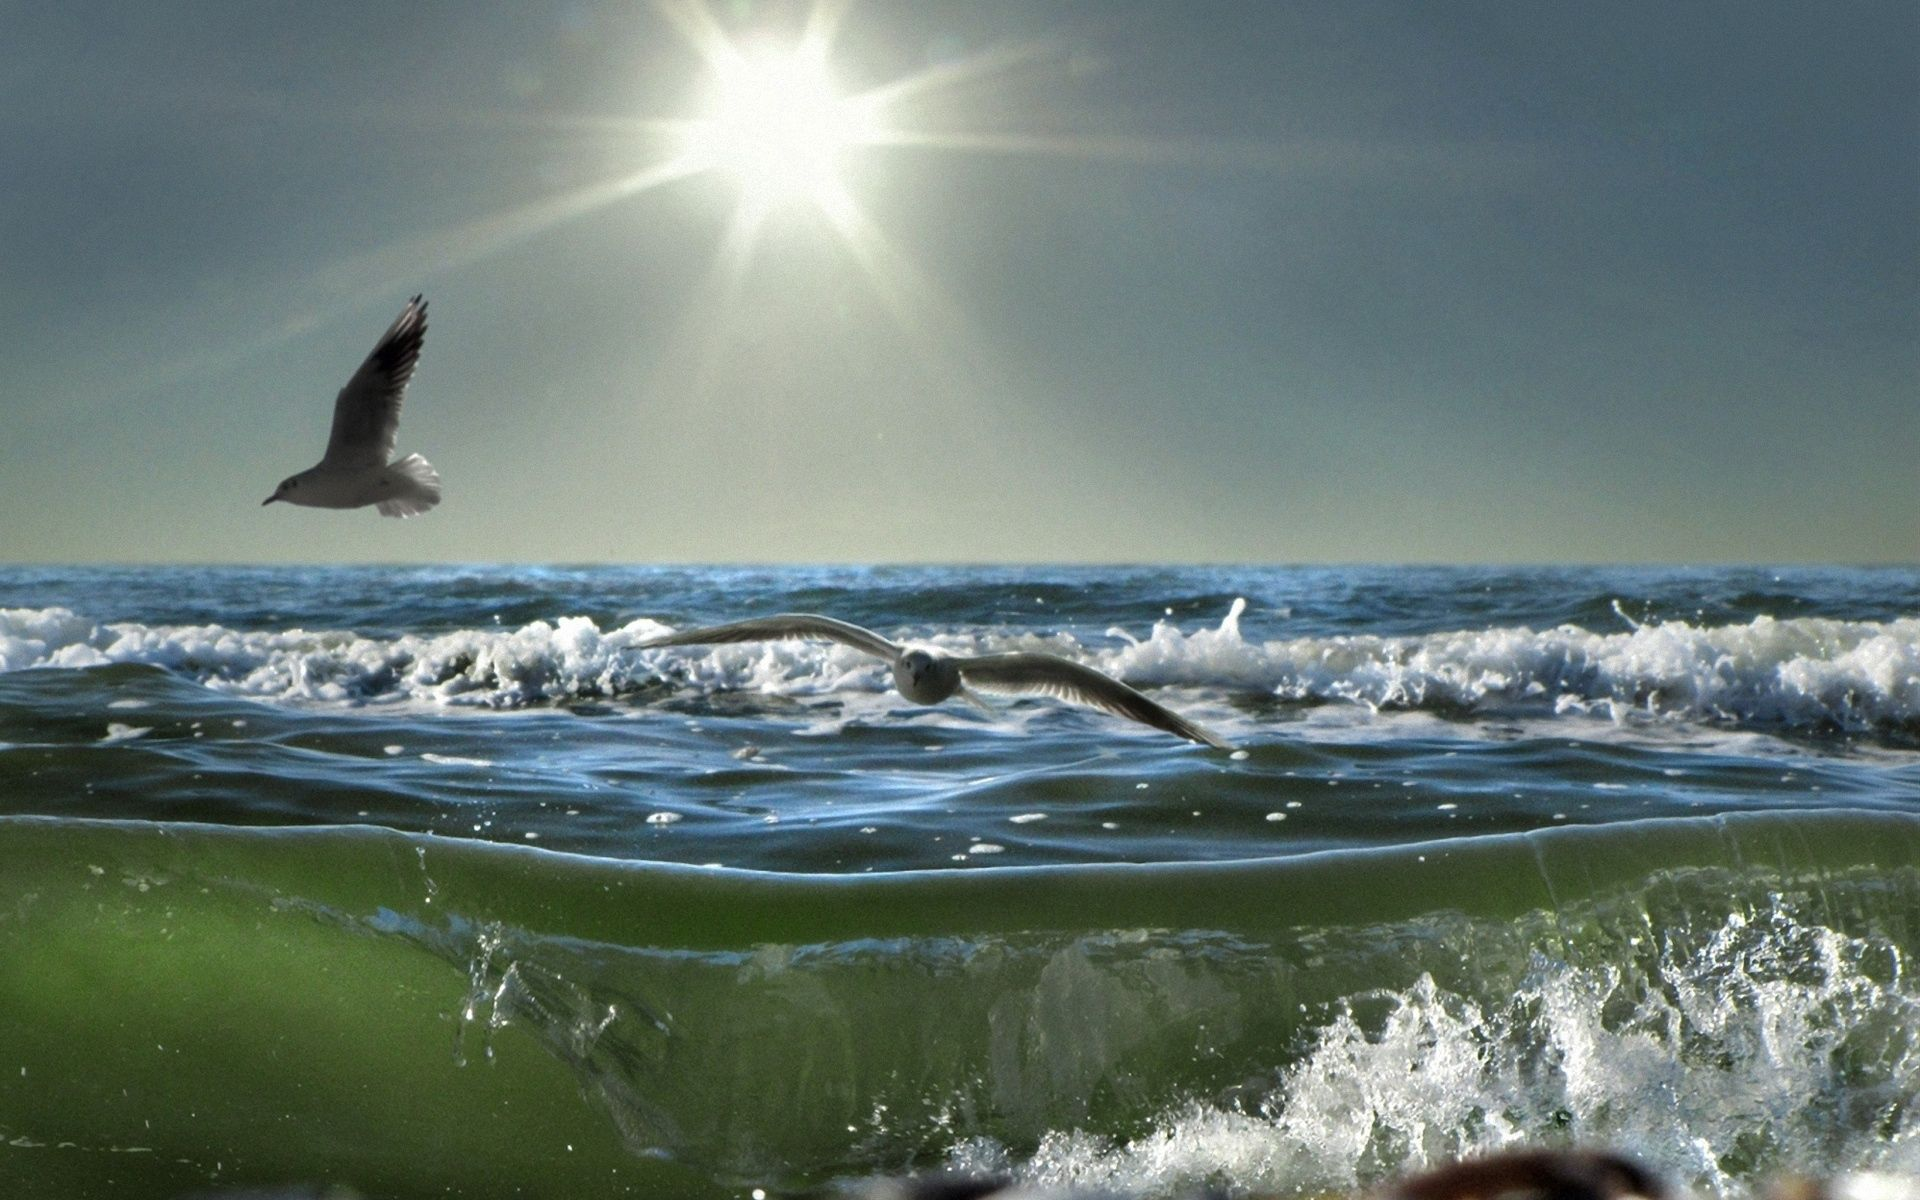 91001 download wallpaper Nature, Sea, Shine, Light, Spray, Day, Waves, Sun, Birds, Seagulls screensavers and pictures for free